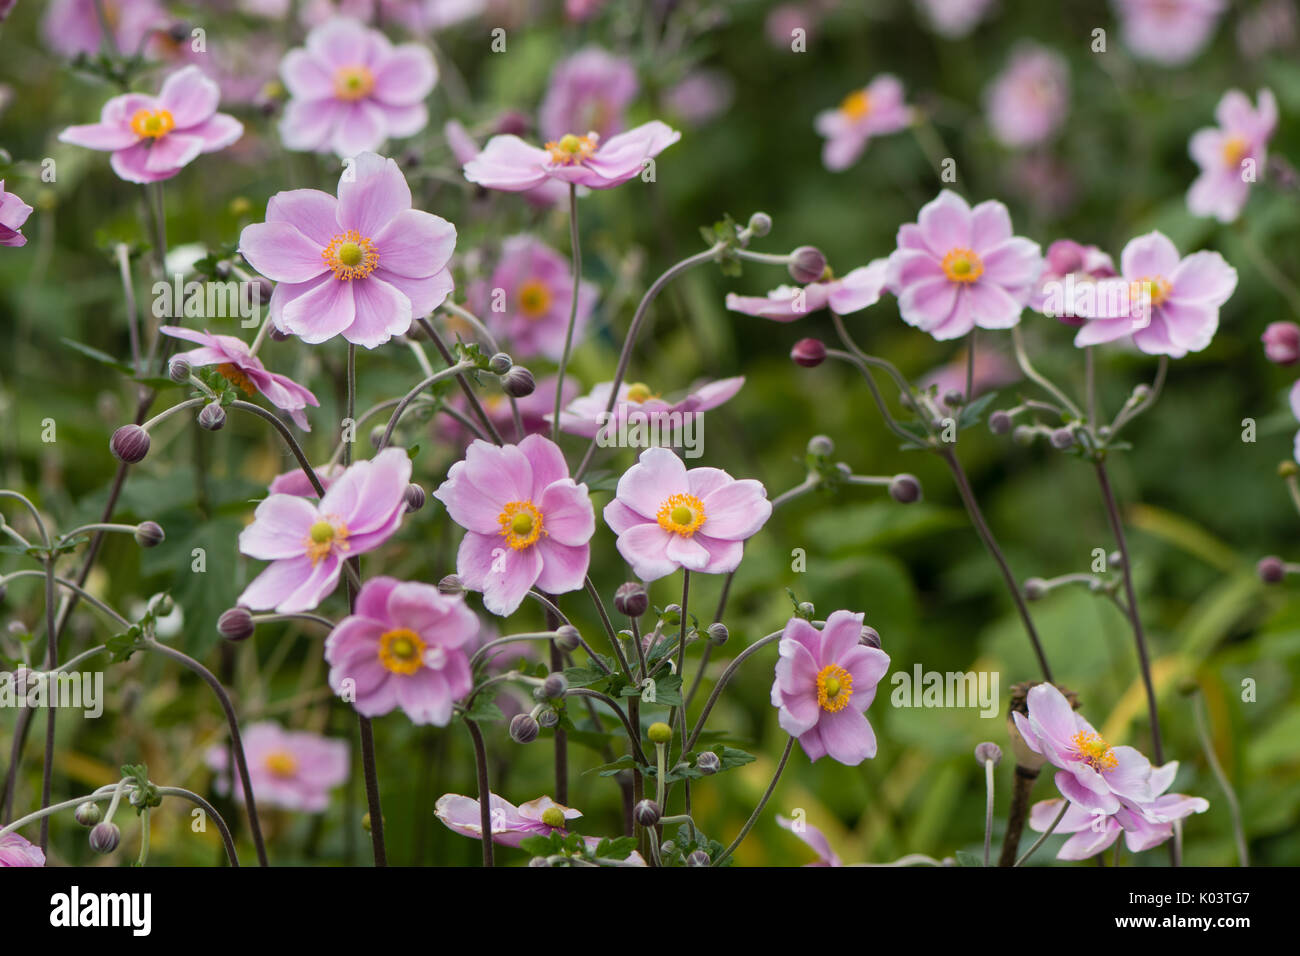 Japanese anemone (Anemone hupehensis) in flower. Pink garden plant in the family Ranunculaceae, aka Chinese anemone, Stock Photo